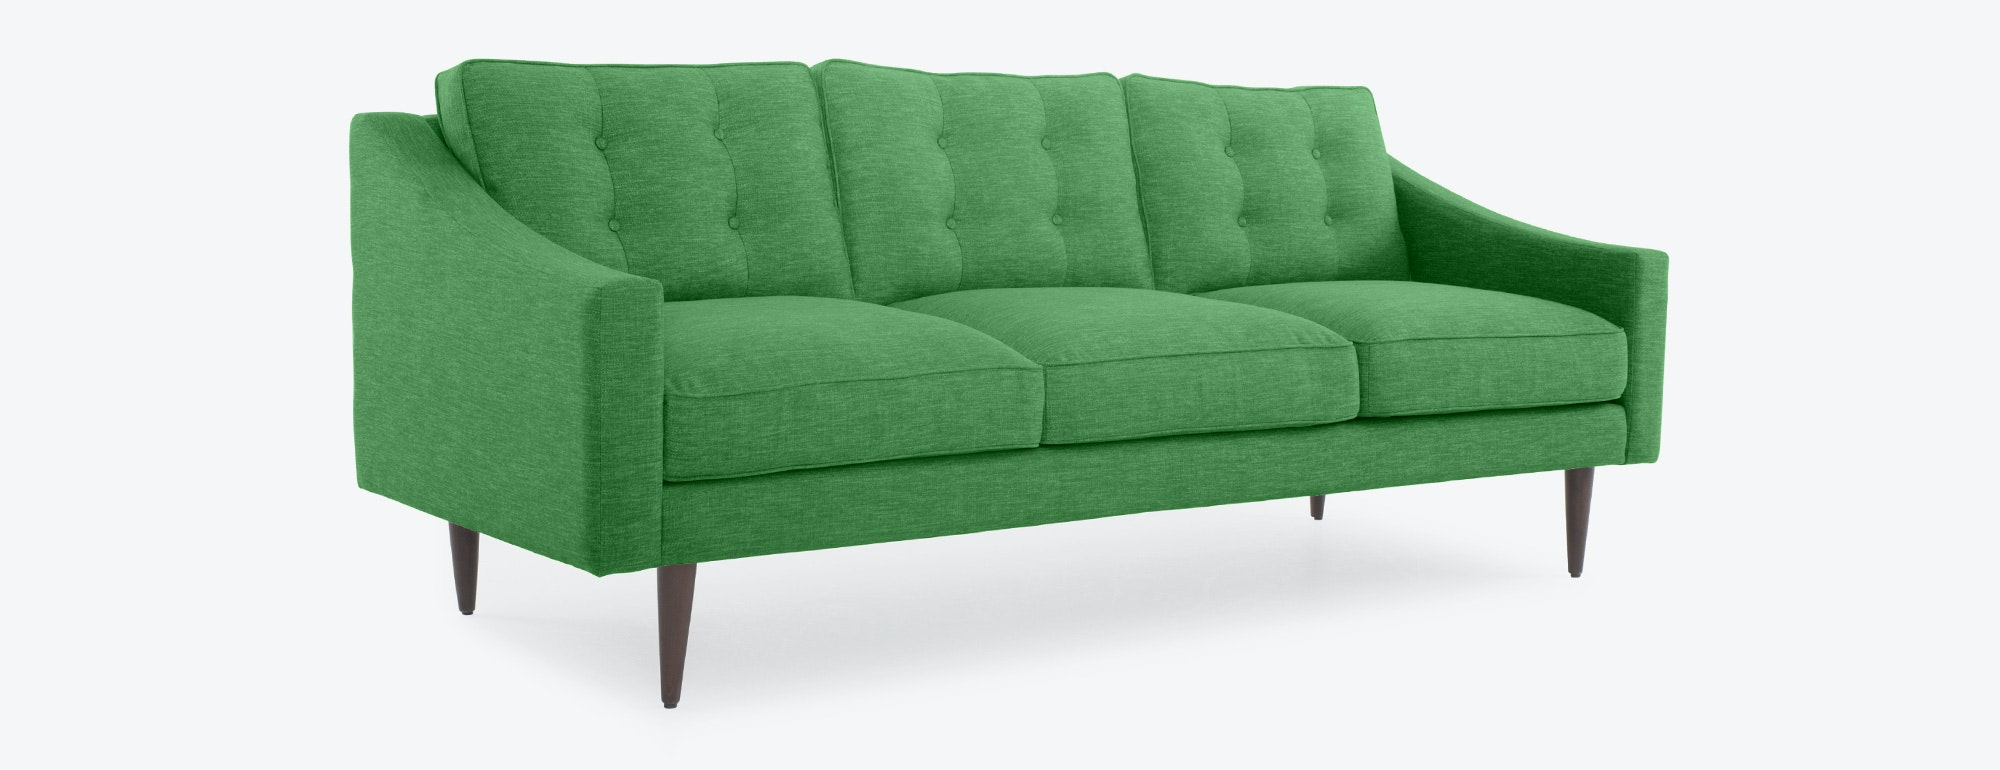 loveseat or sofa difference cushion covers for sectional s what the between and couch thesofa